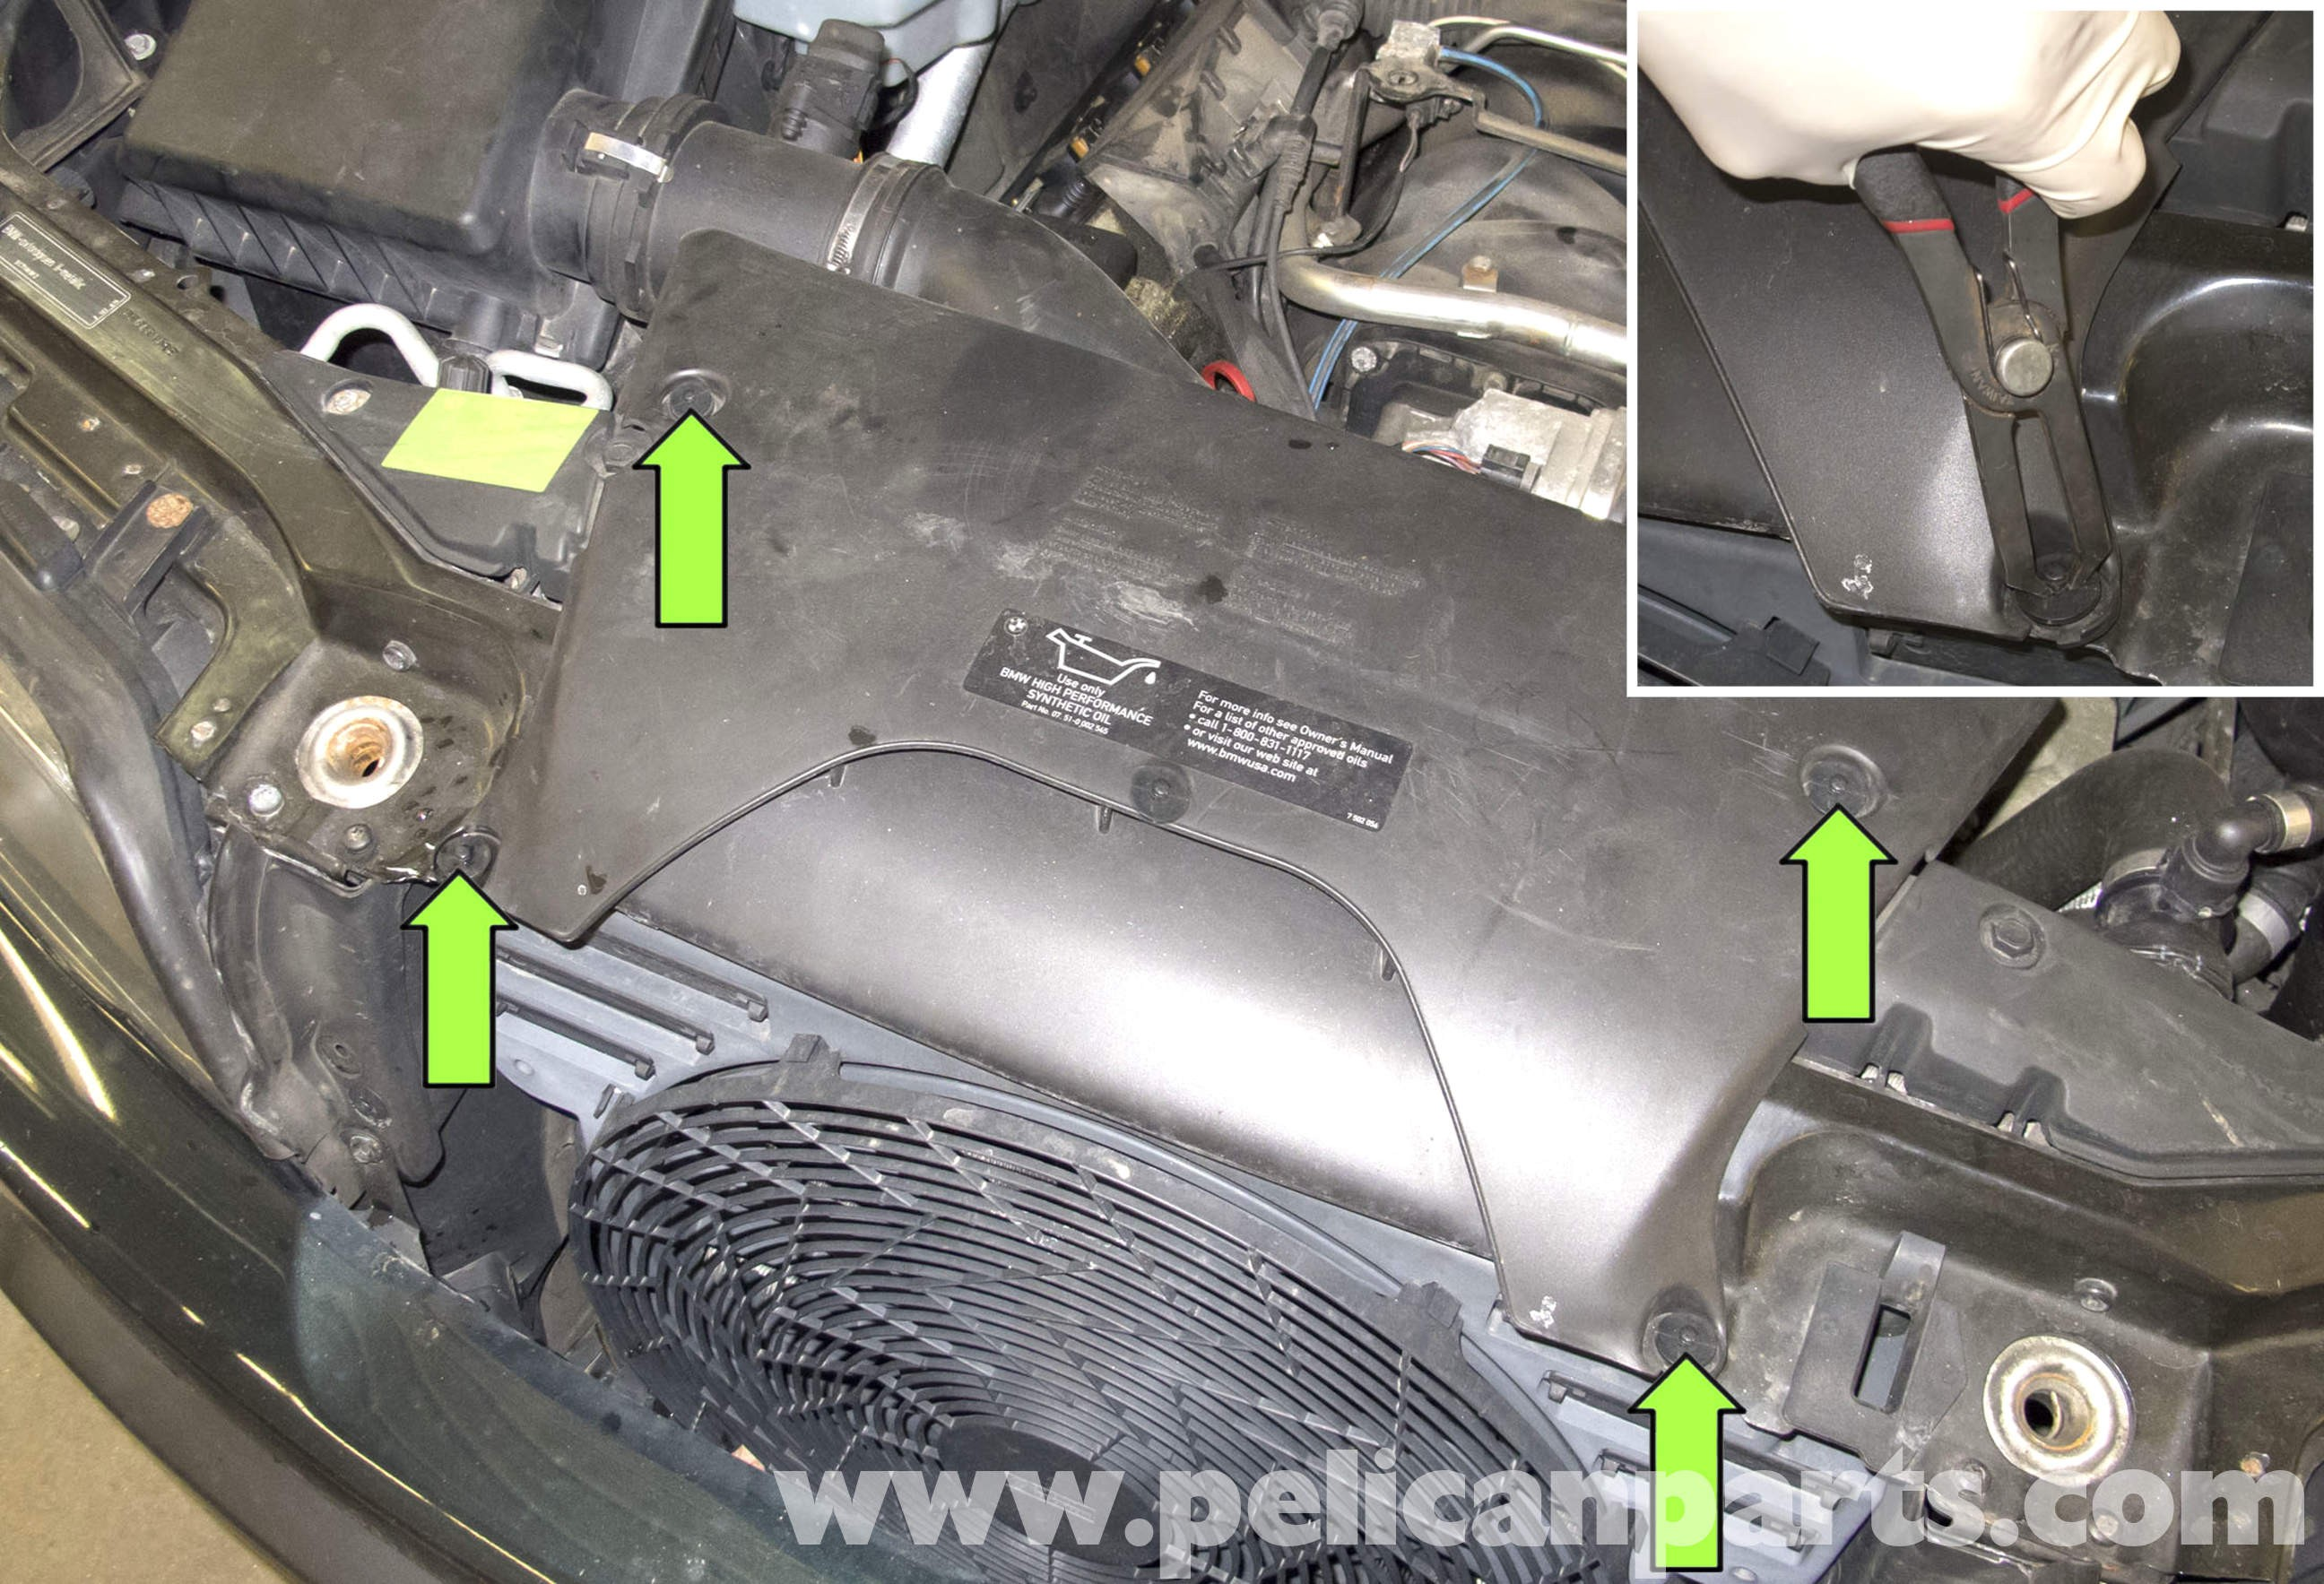 Bmw X5 Engine Diagram Bmw X5 Engine Cooling Fan Replacement E53 2000 2006 Of Bmw X5 Engine Diagram